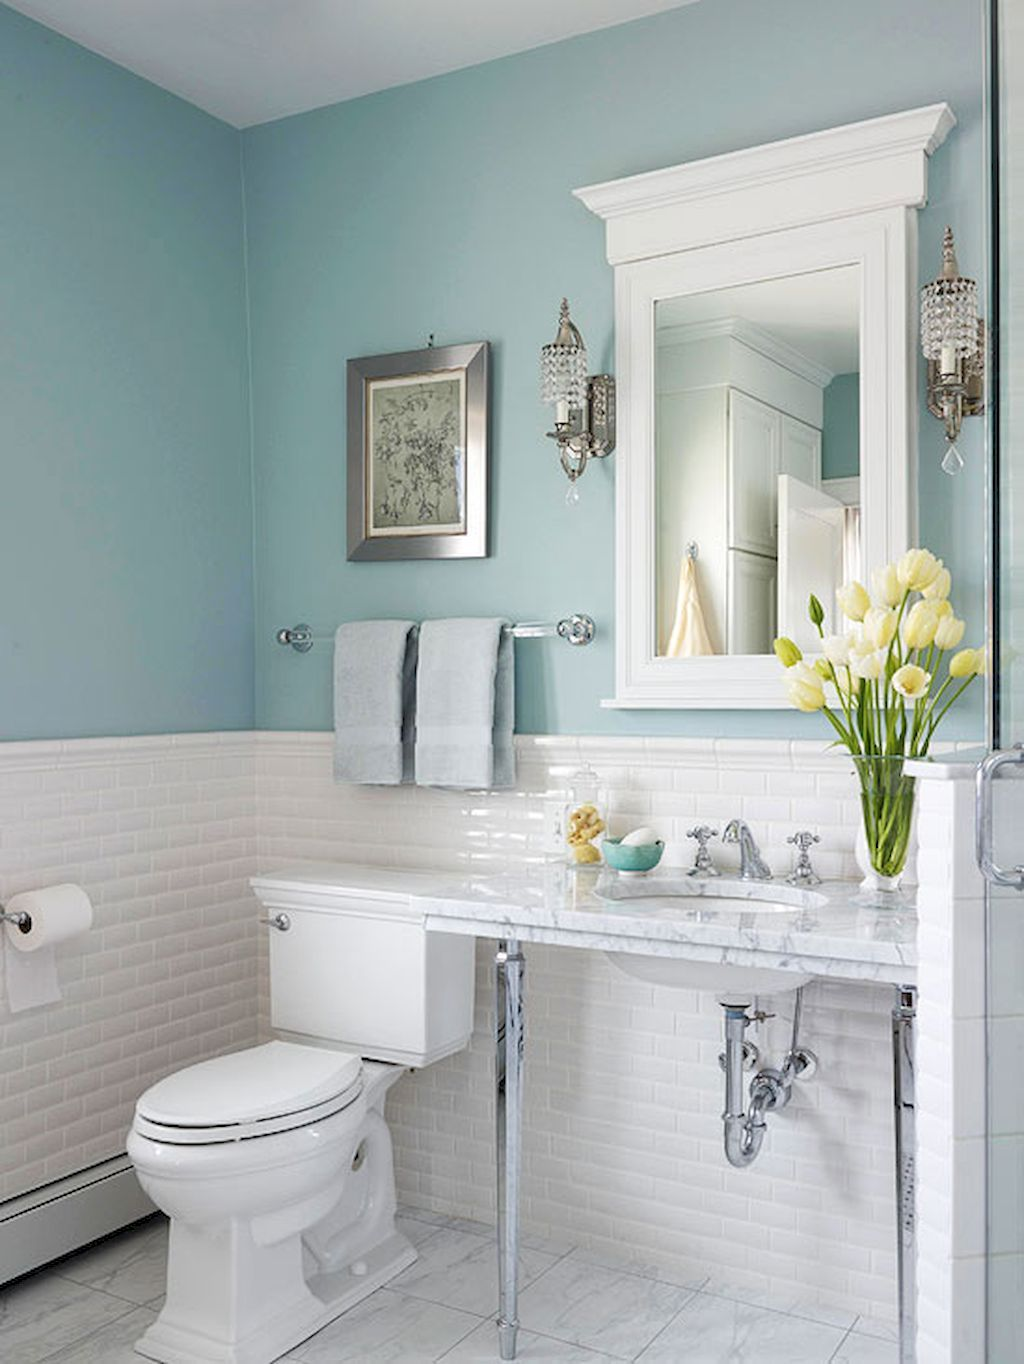 50 Awesome Small Powder Room Ideas | Small powder rooms, Powder room ...